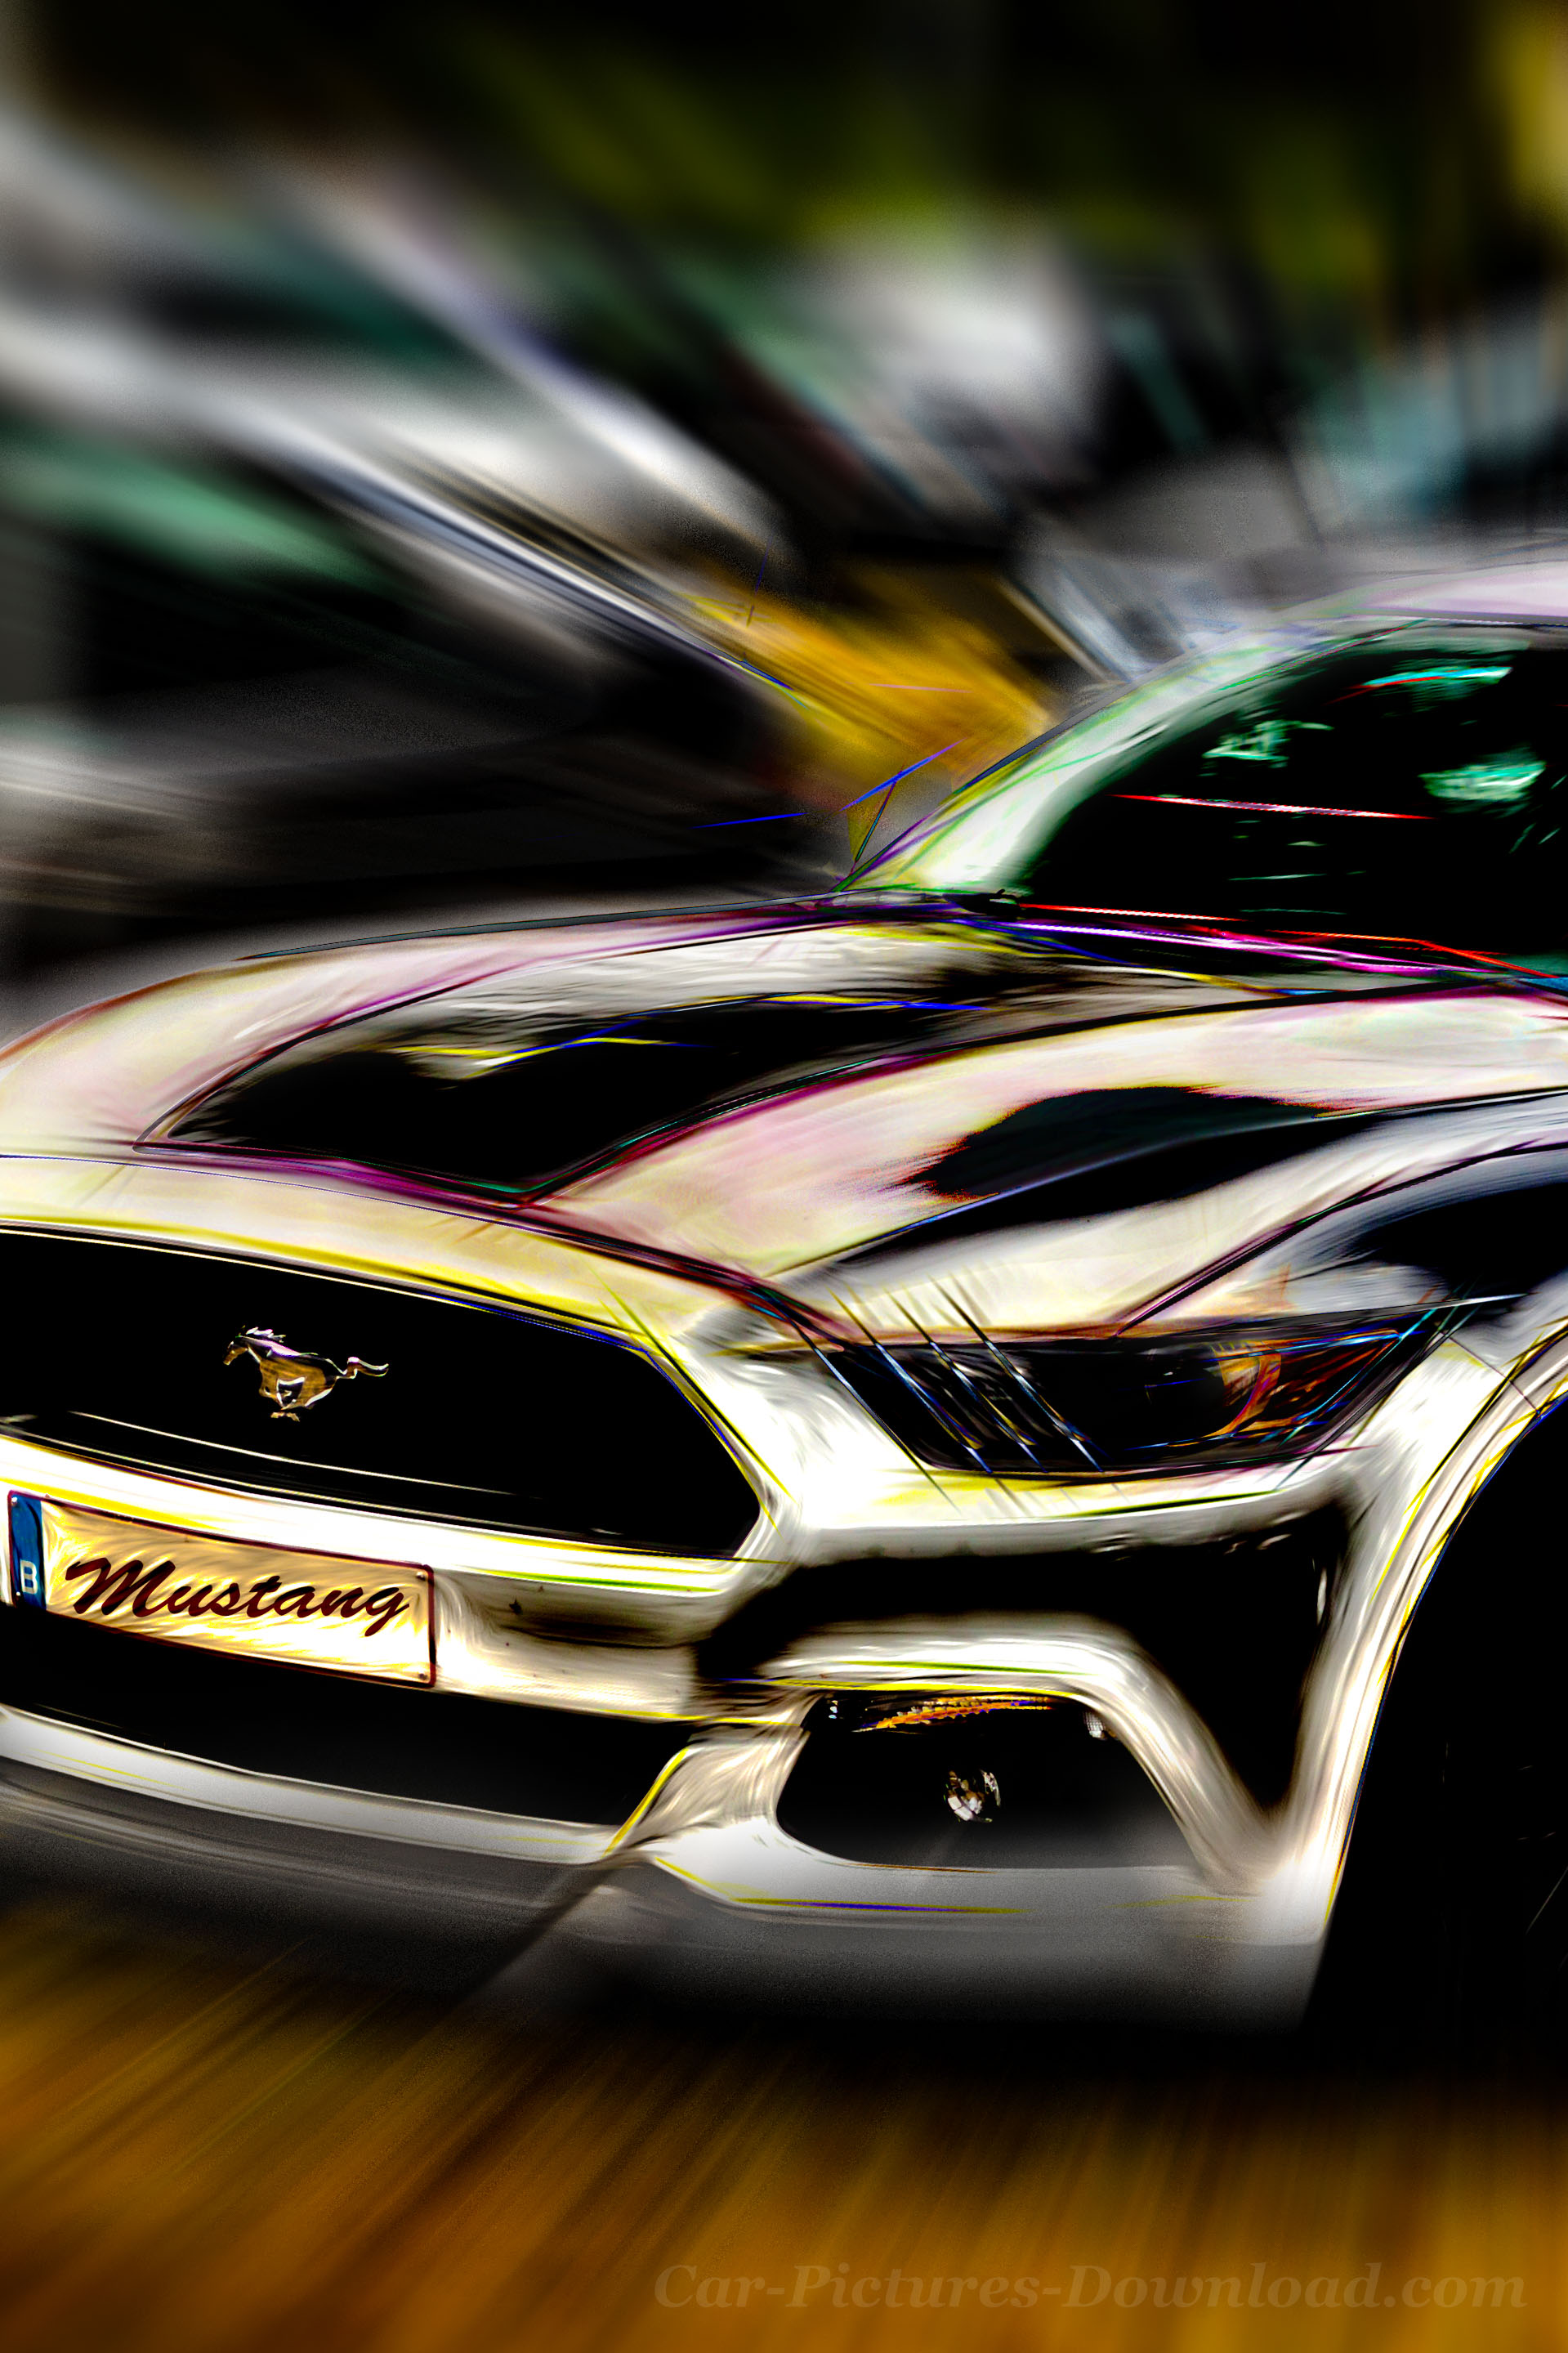 Cool Ford Mustang Car Wallpaper Hd Mobile Ultra Hd Best Wallpaper For Mobile 1919x2879 Wallpaper Teahub Io